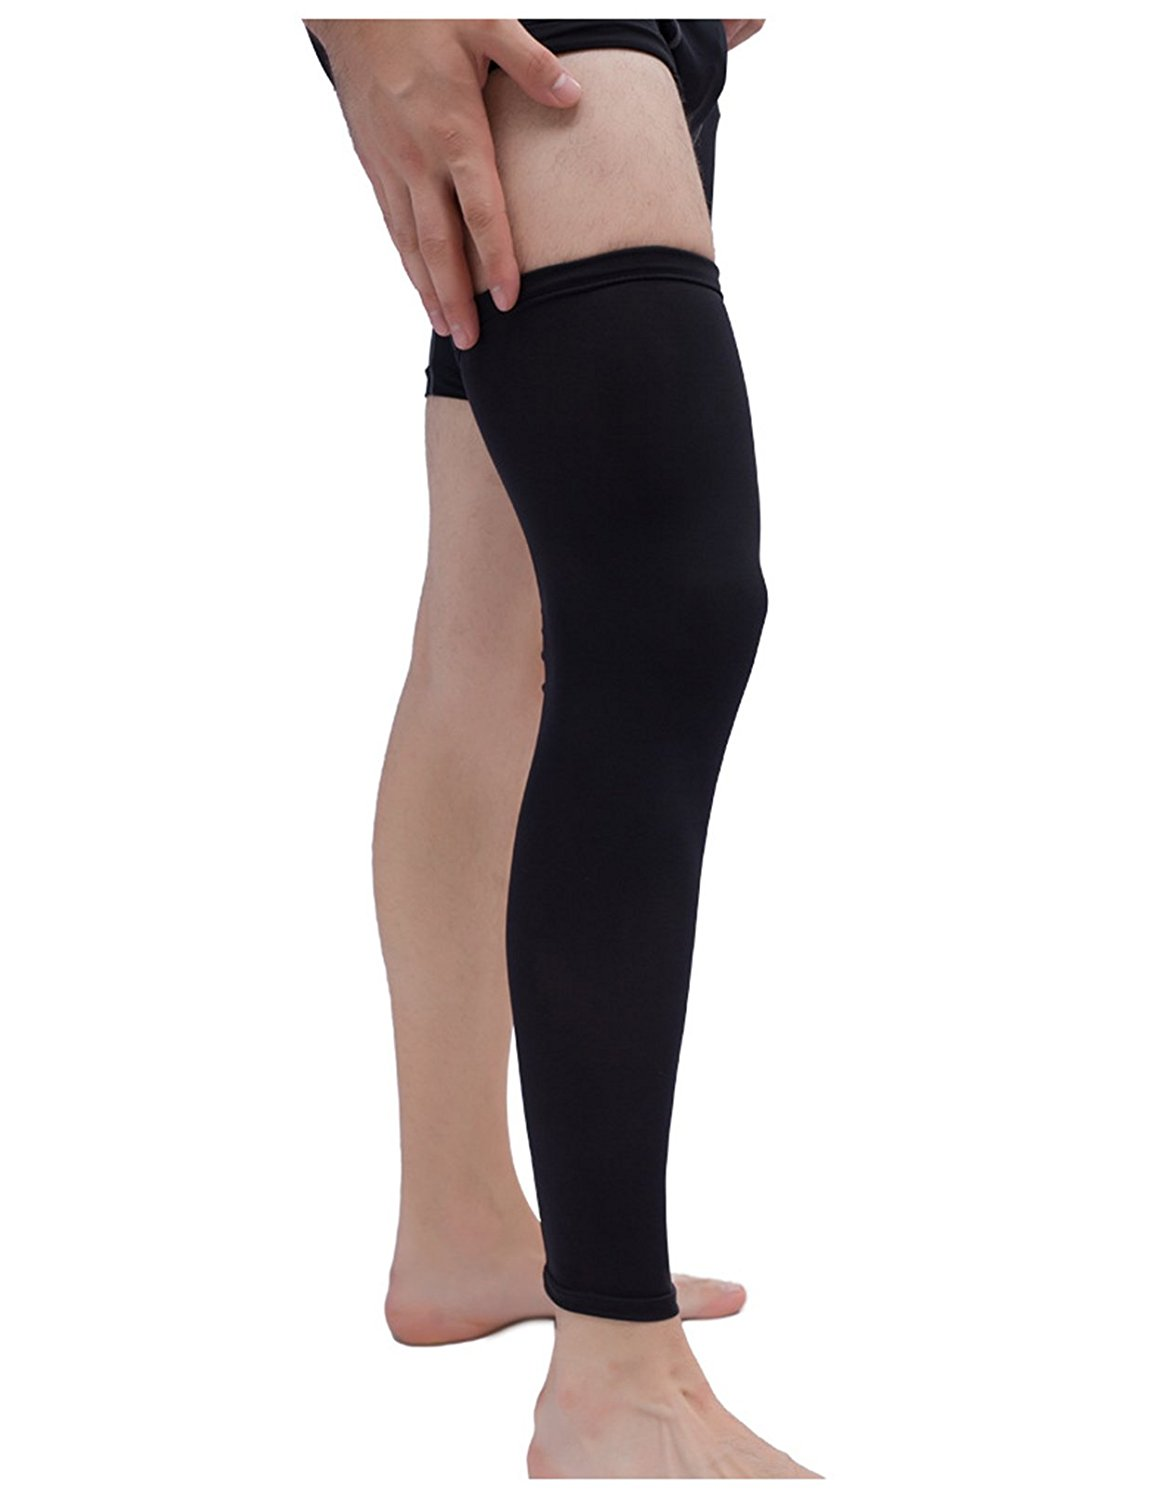 c8424165e5 Get Quotations · LAVYINGY Compression Long Knee Sleeves Basketball Knee Pad  Knee support Best Knee Protect for Basketball,